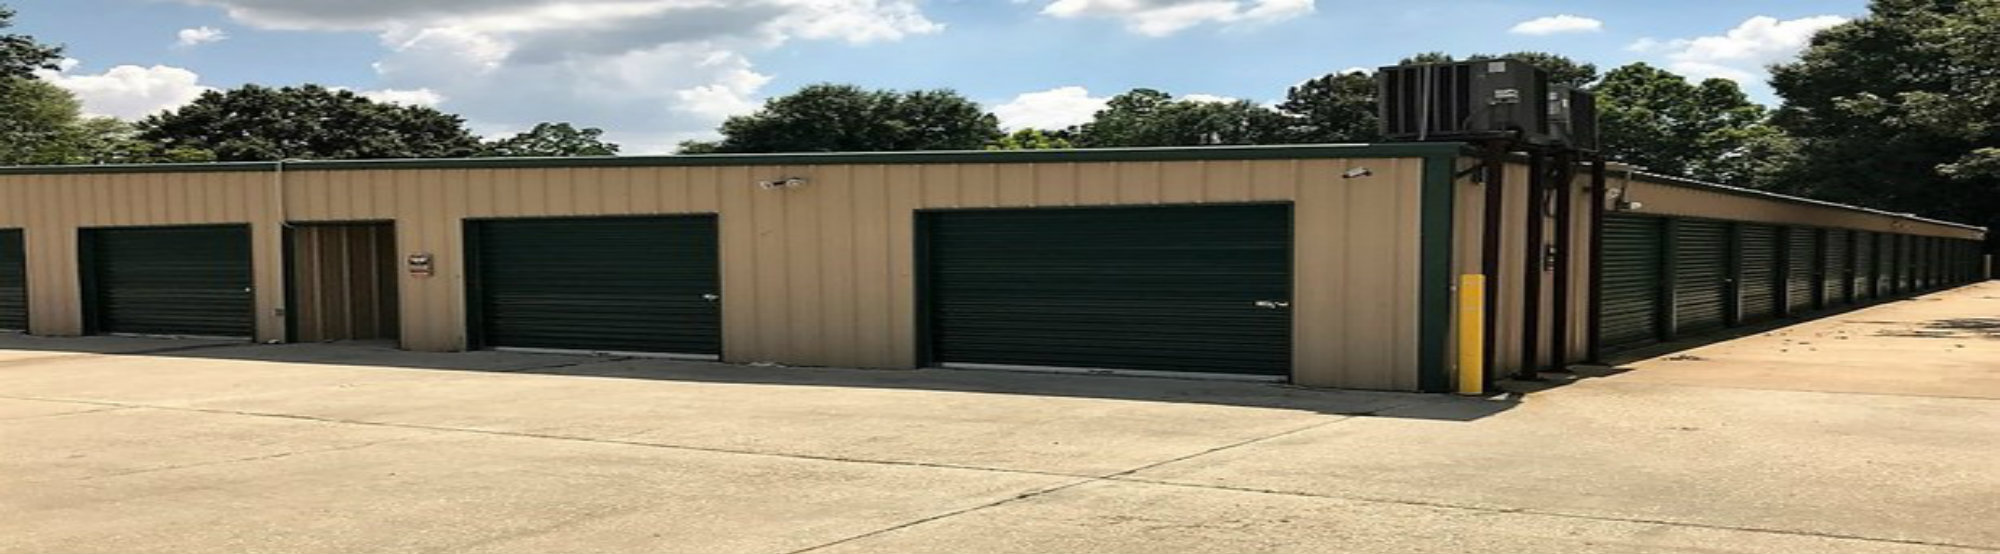 Self Storage on Hwy 16 in Denham Springs, LA